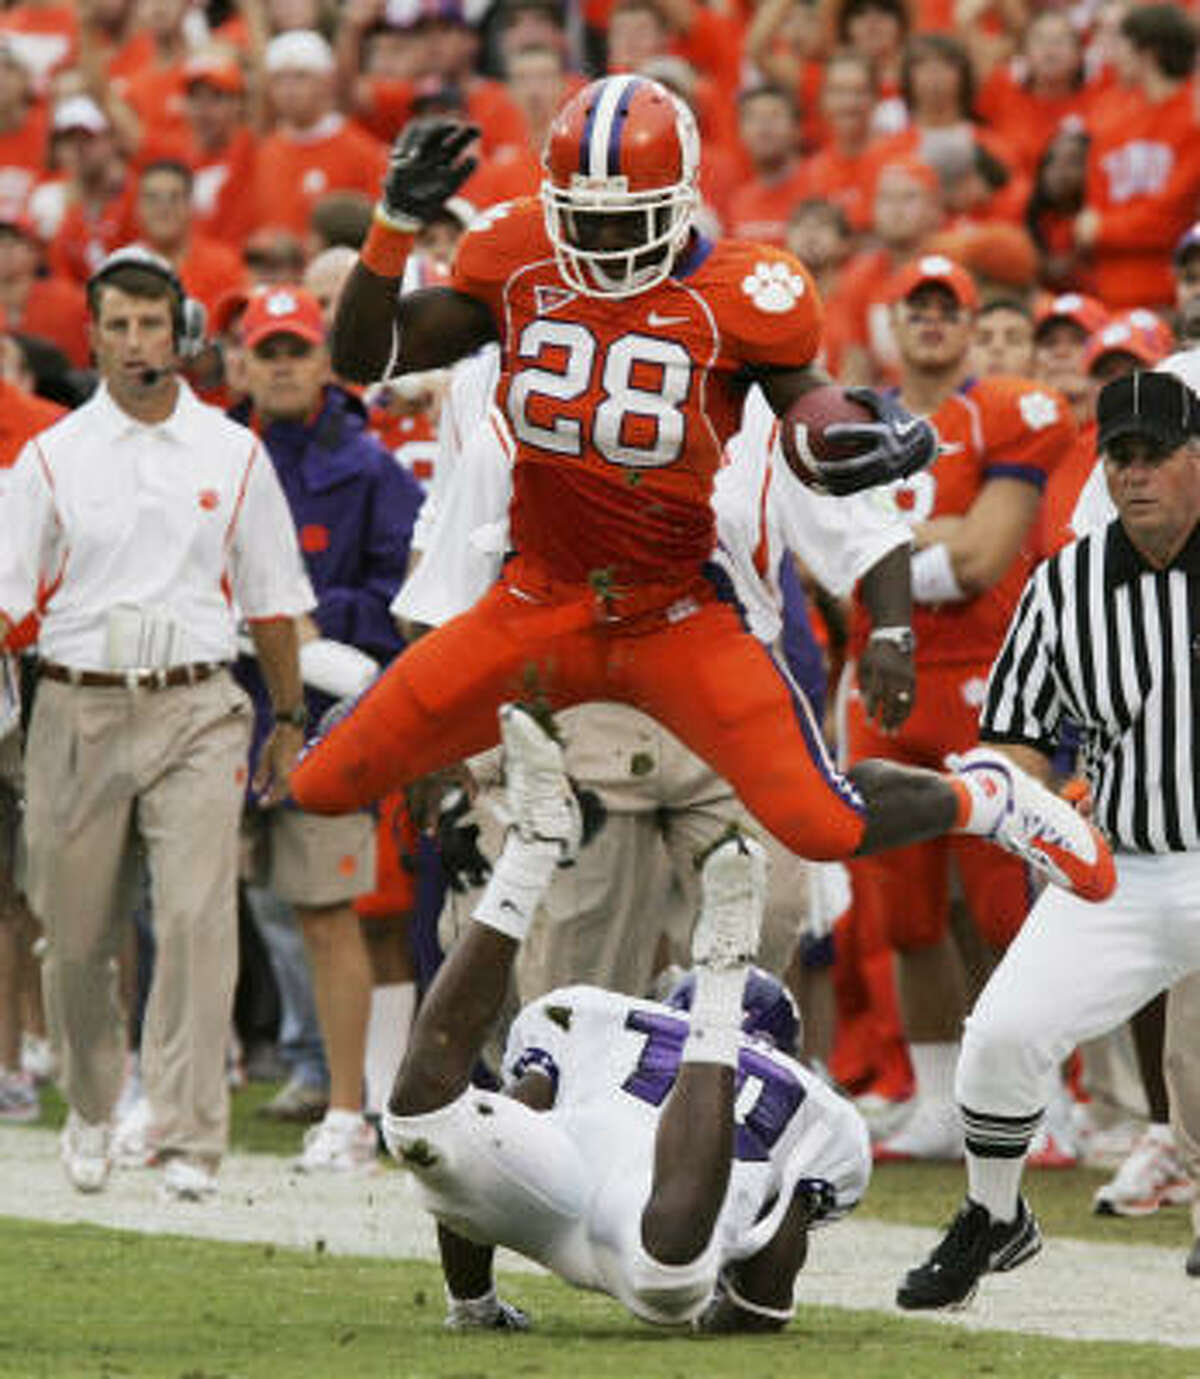 Clemson's C.J. Spiller jumps over TCU's Rafael Priest during the first half.